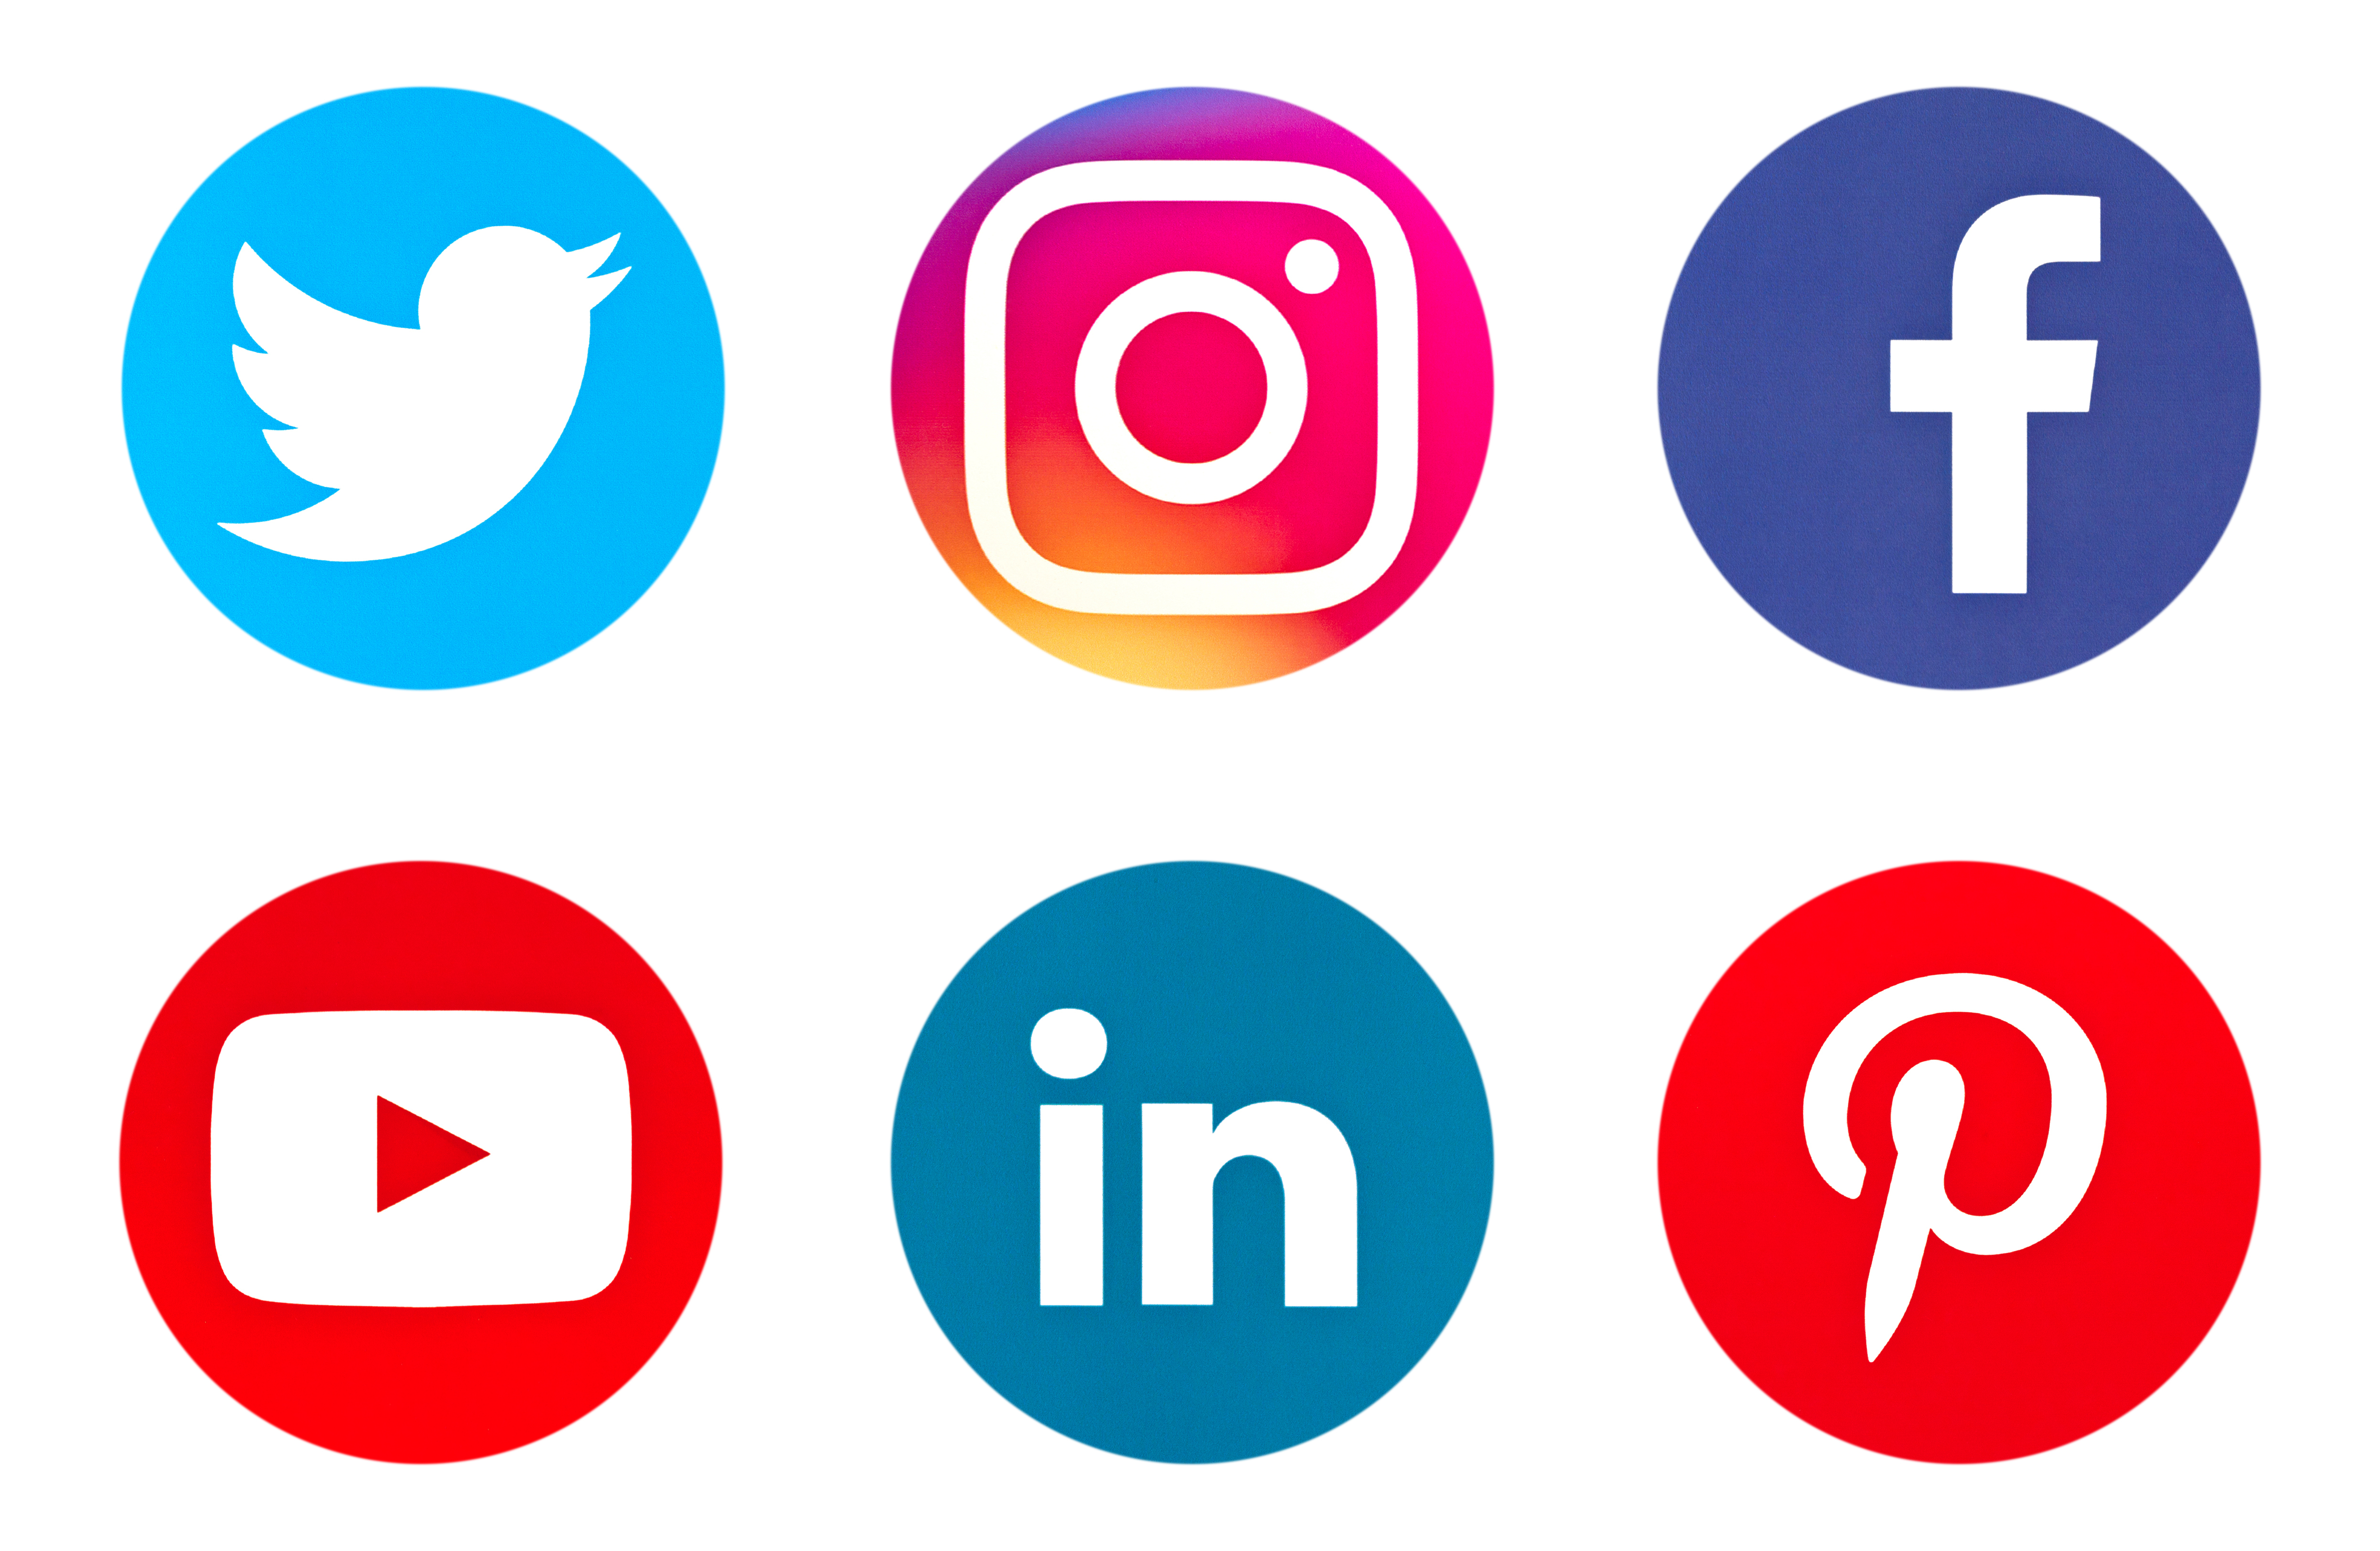 images of various social media icons